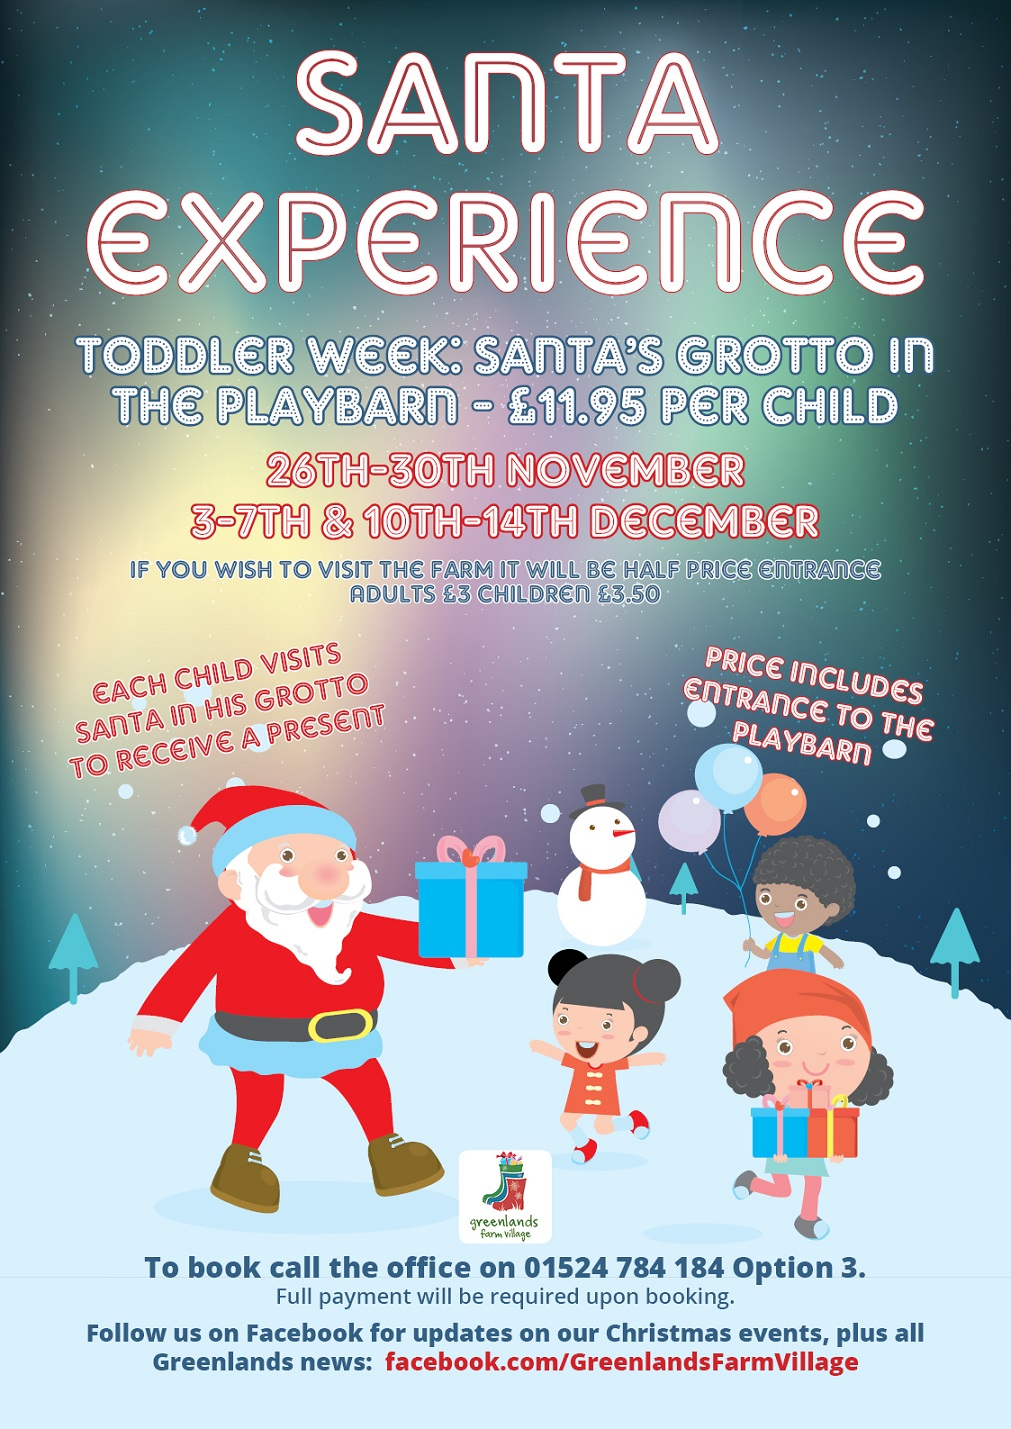 Santa S Grotto Colouring With Greenlands Farm Village A Taste Of The